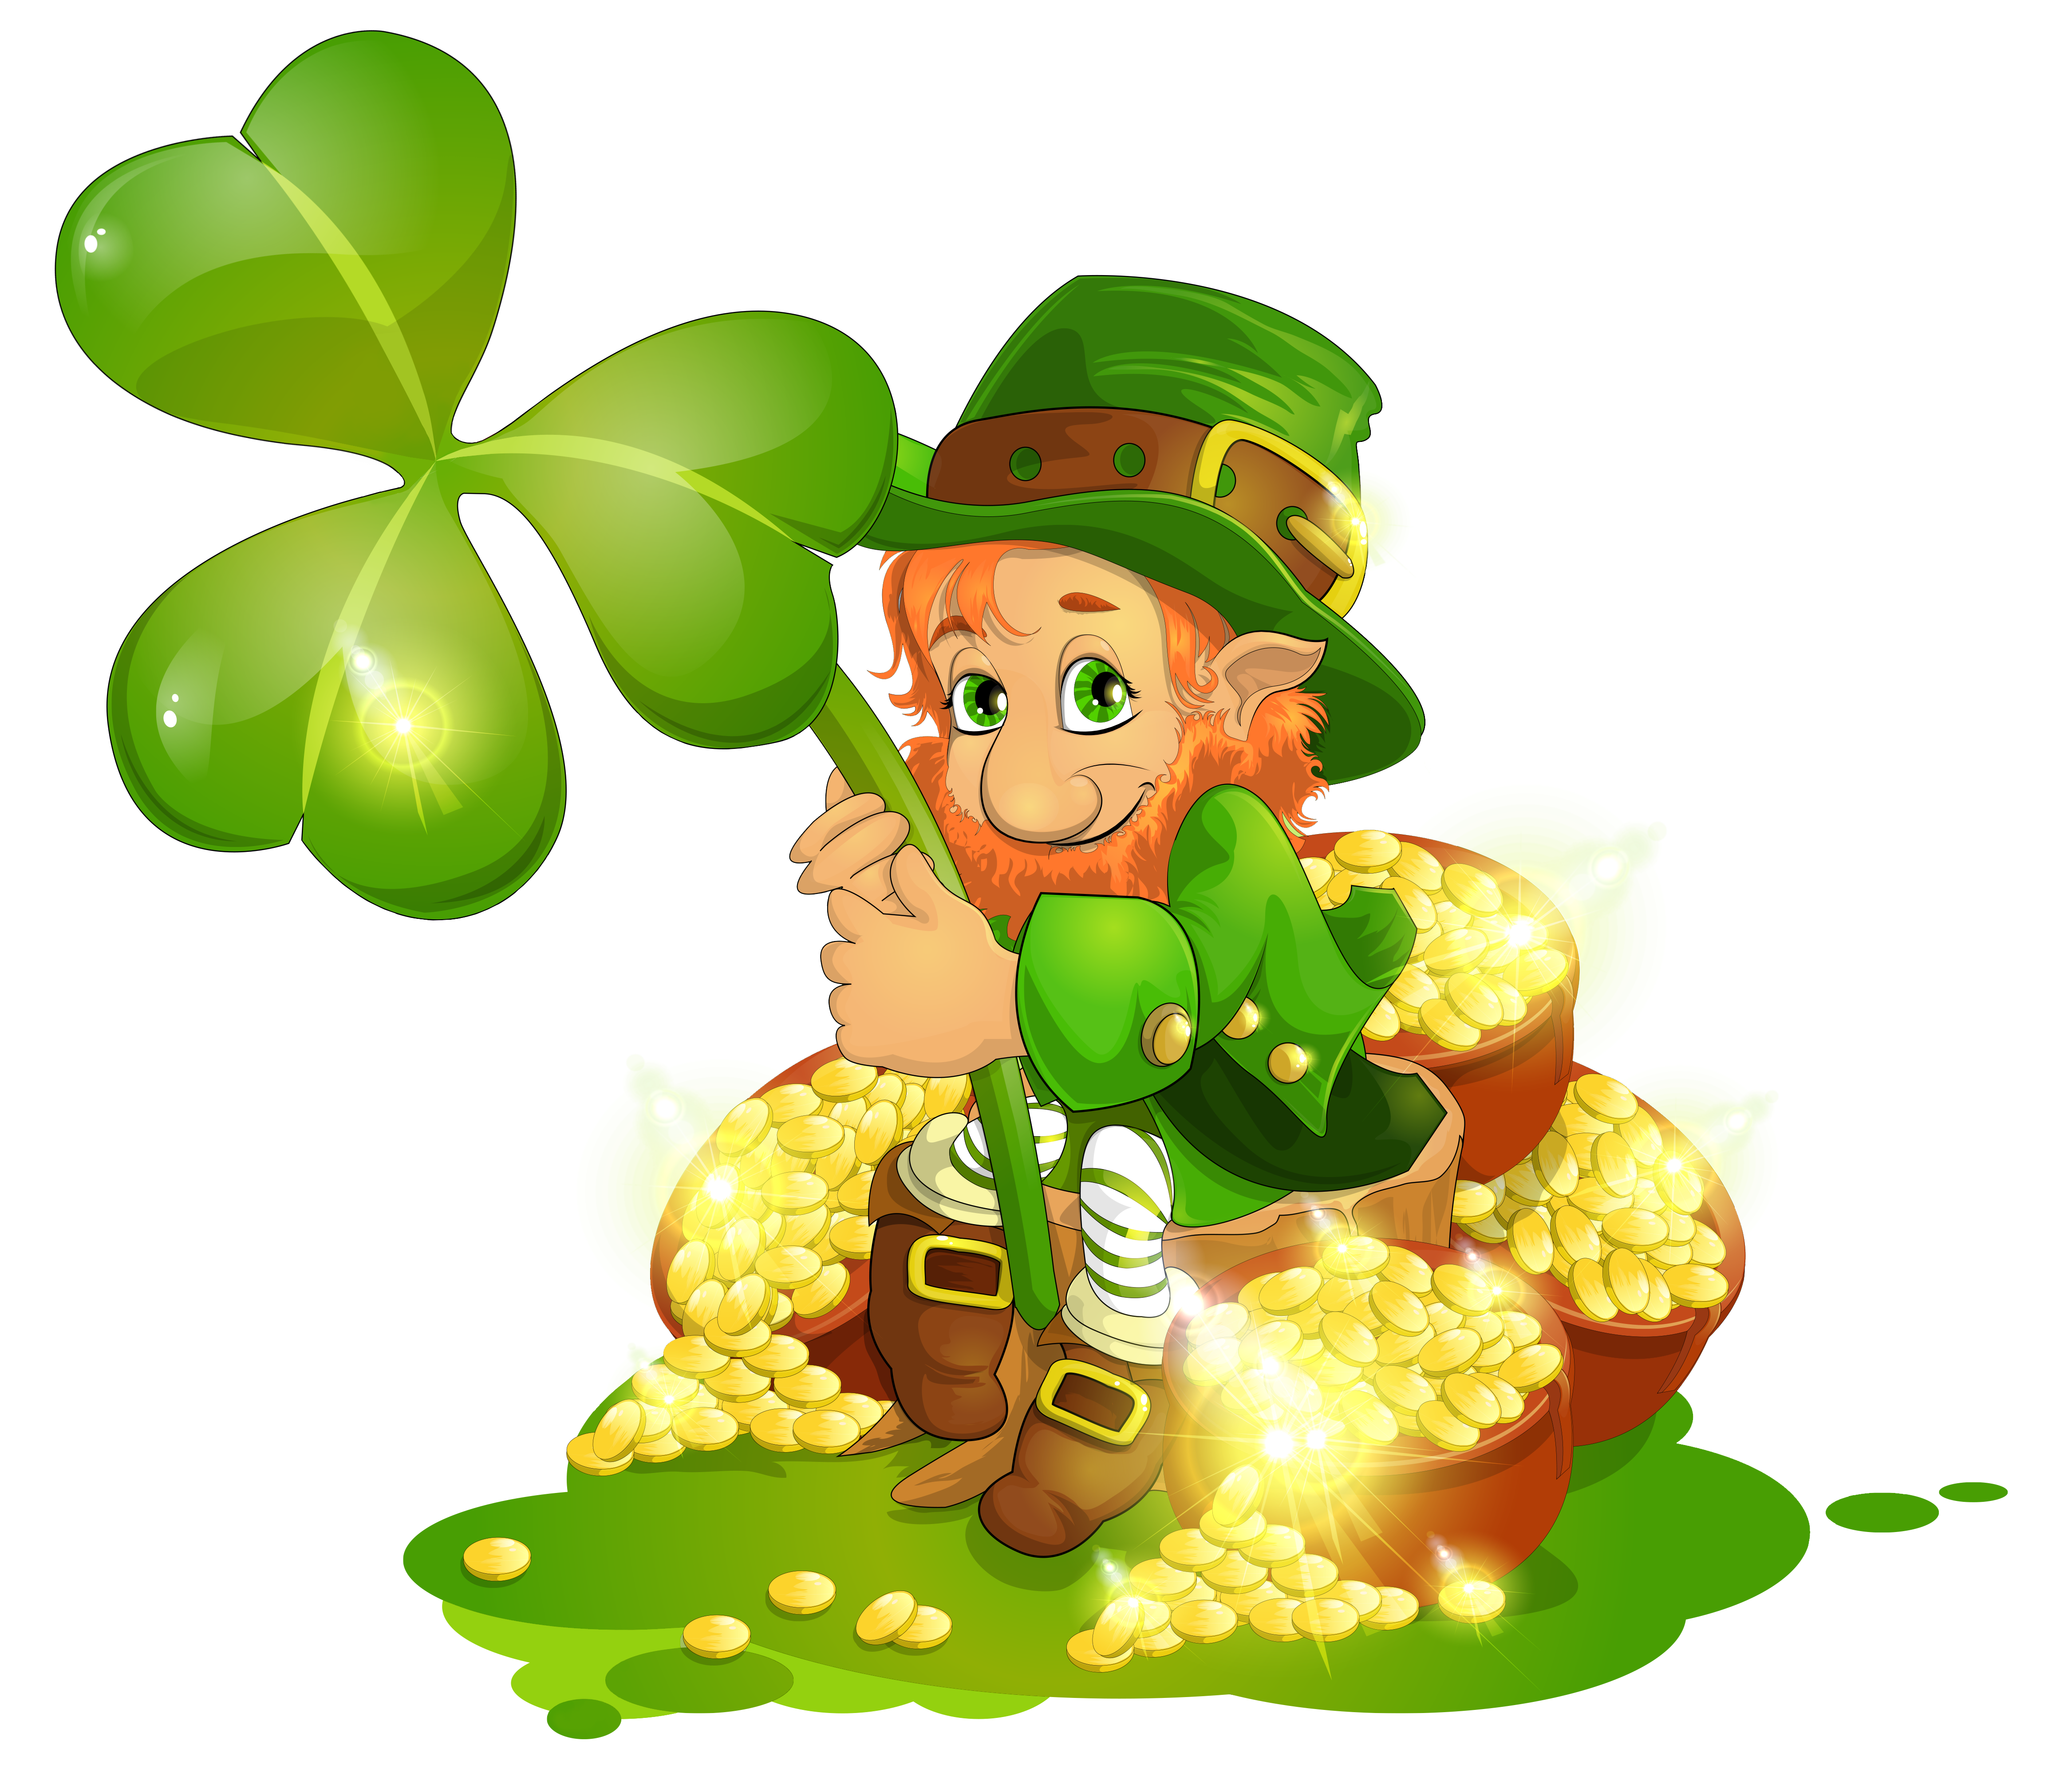 4642x4039 Saint Patrick's Day Leprechaun With Pot Of Gold And Shamrock Png